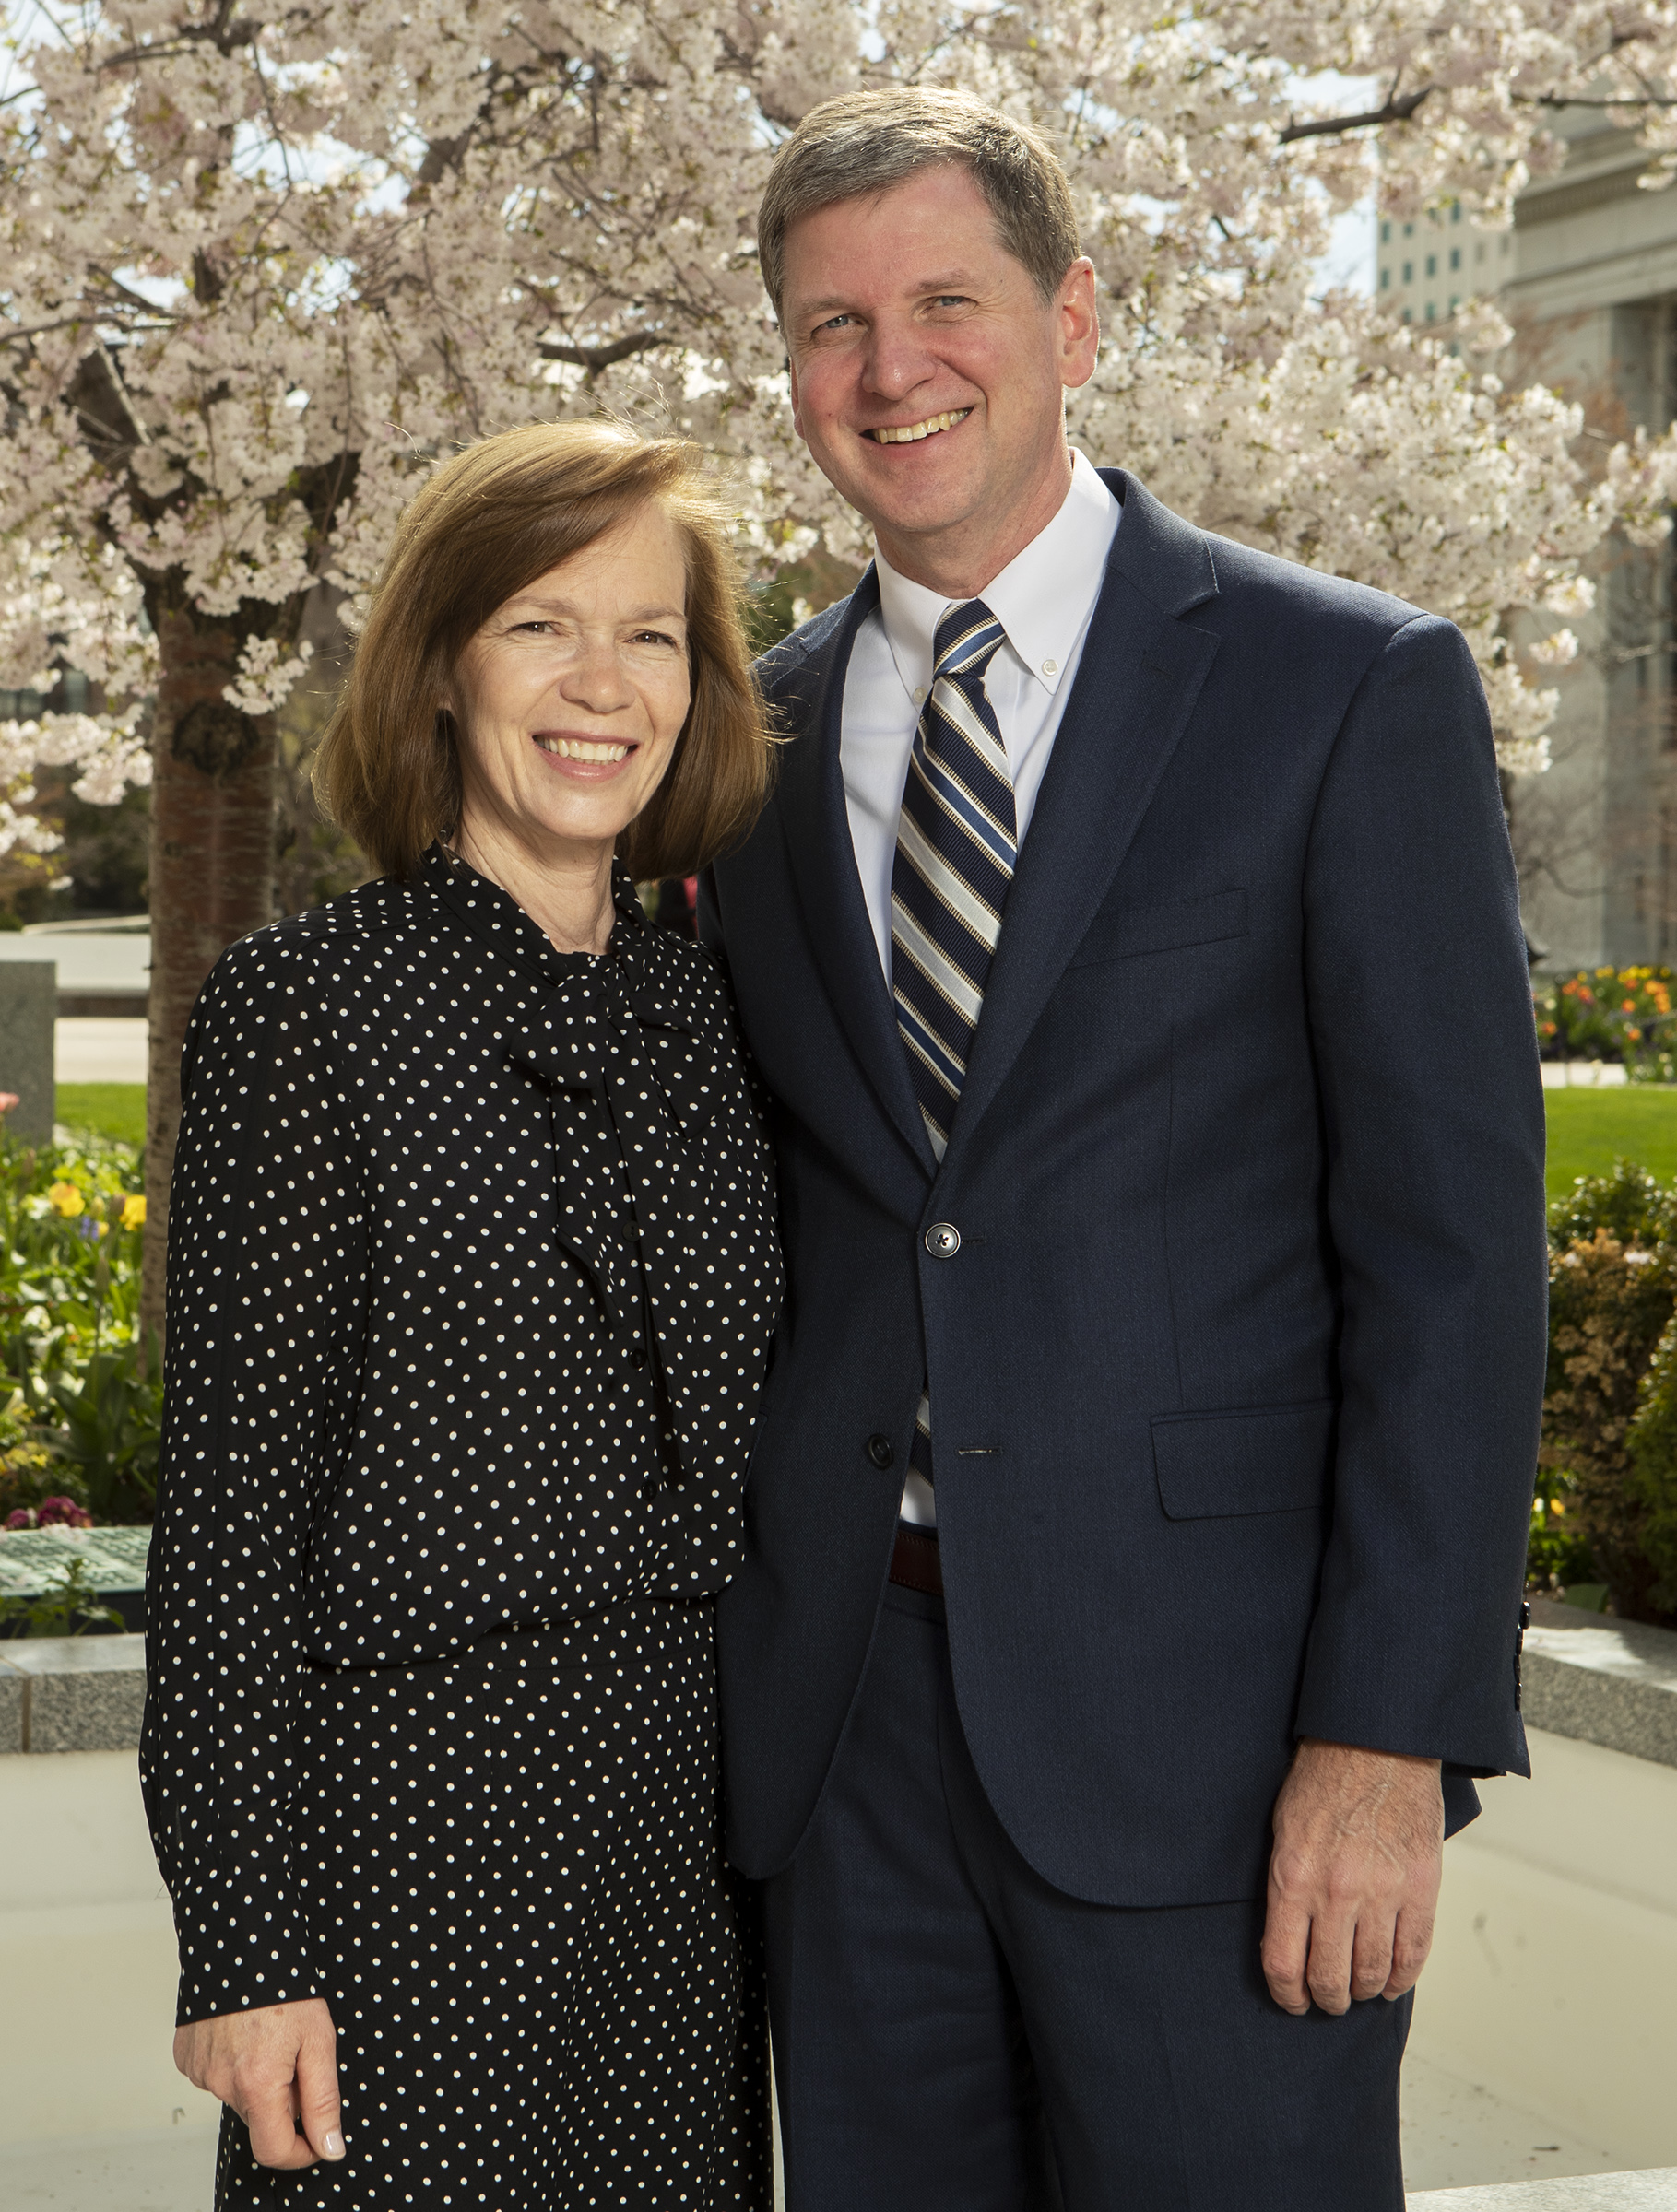 Sister Mary Rasband and Elder James R. Rasband, a new General Authority Seventy, pose for photos at the Church Office Building in Salt Lake City on Monday, April 8, 2019.